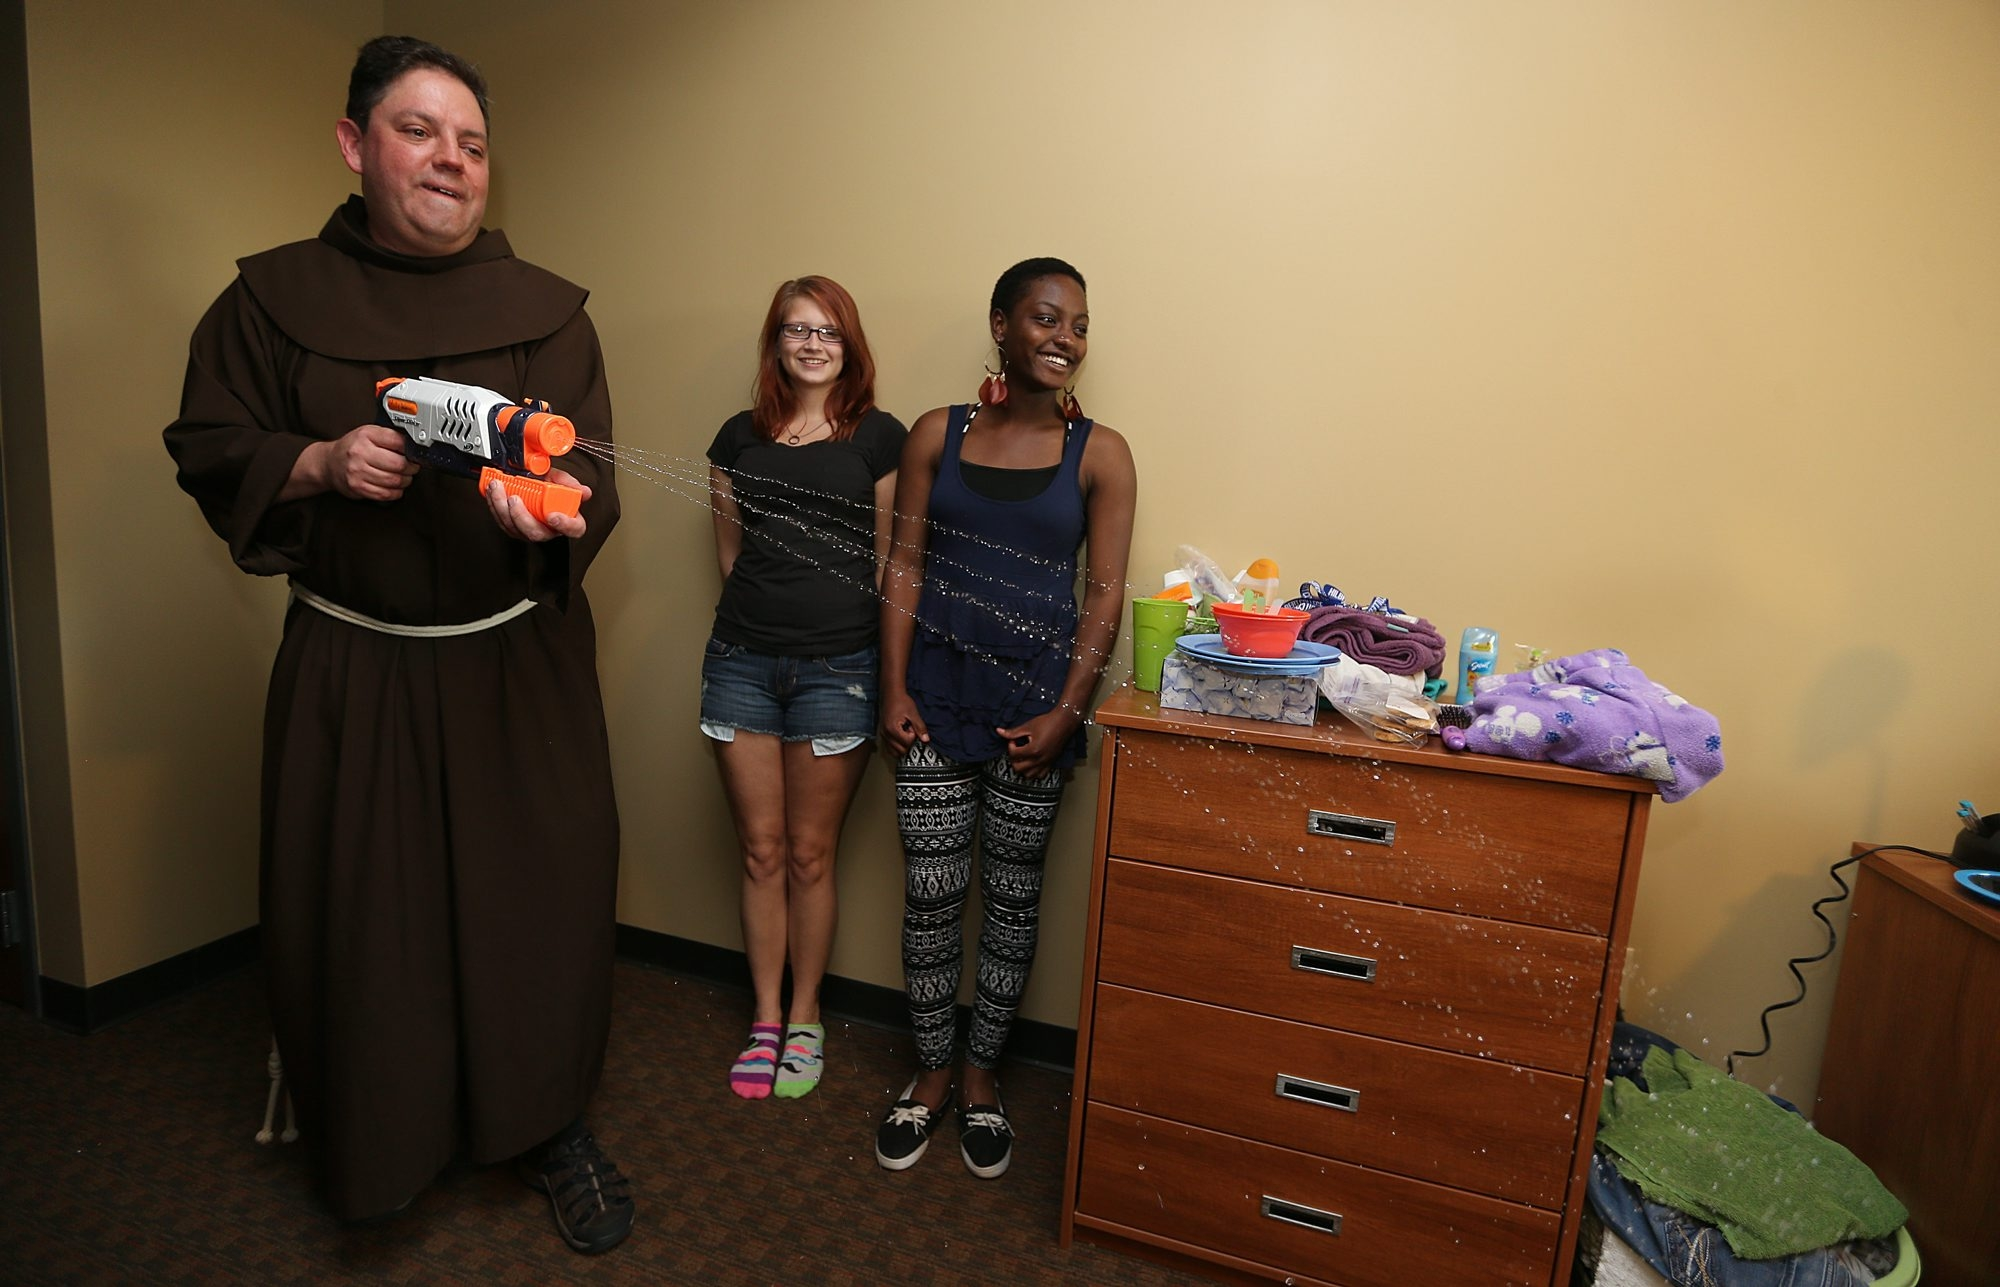 Father Greg Jakubowicz blesses the dorm room of Jennifer Williams, left, and Tatyona Duke with holy water from a  water gun  at Hilbert College in Hamburg Wednesday.